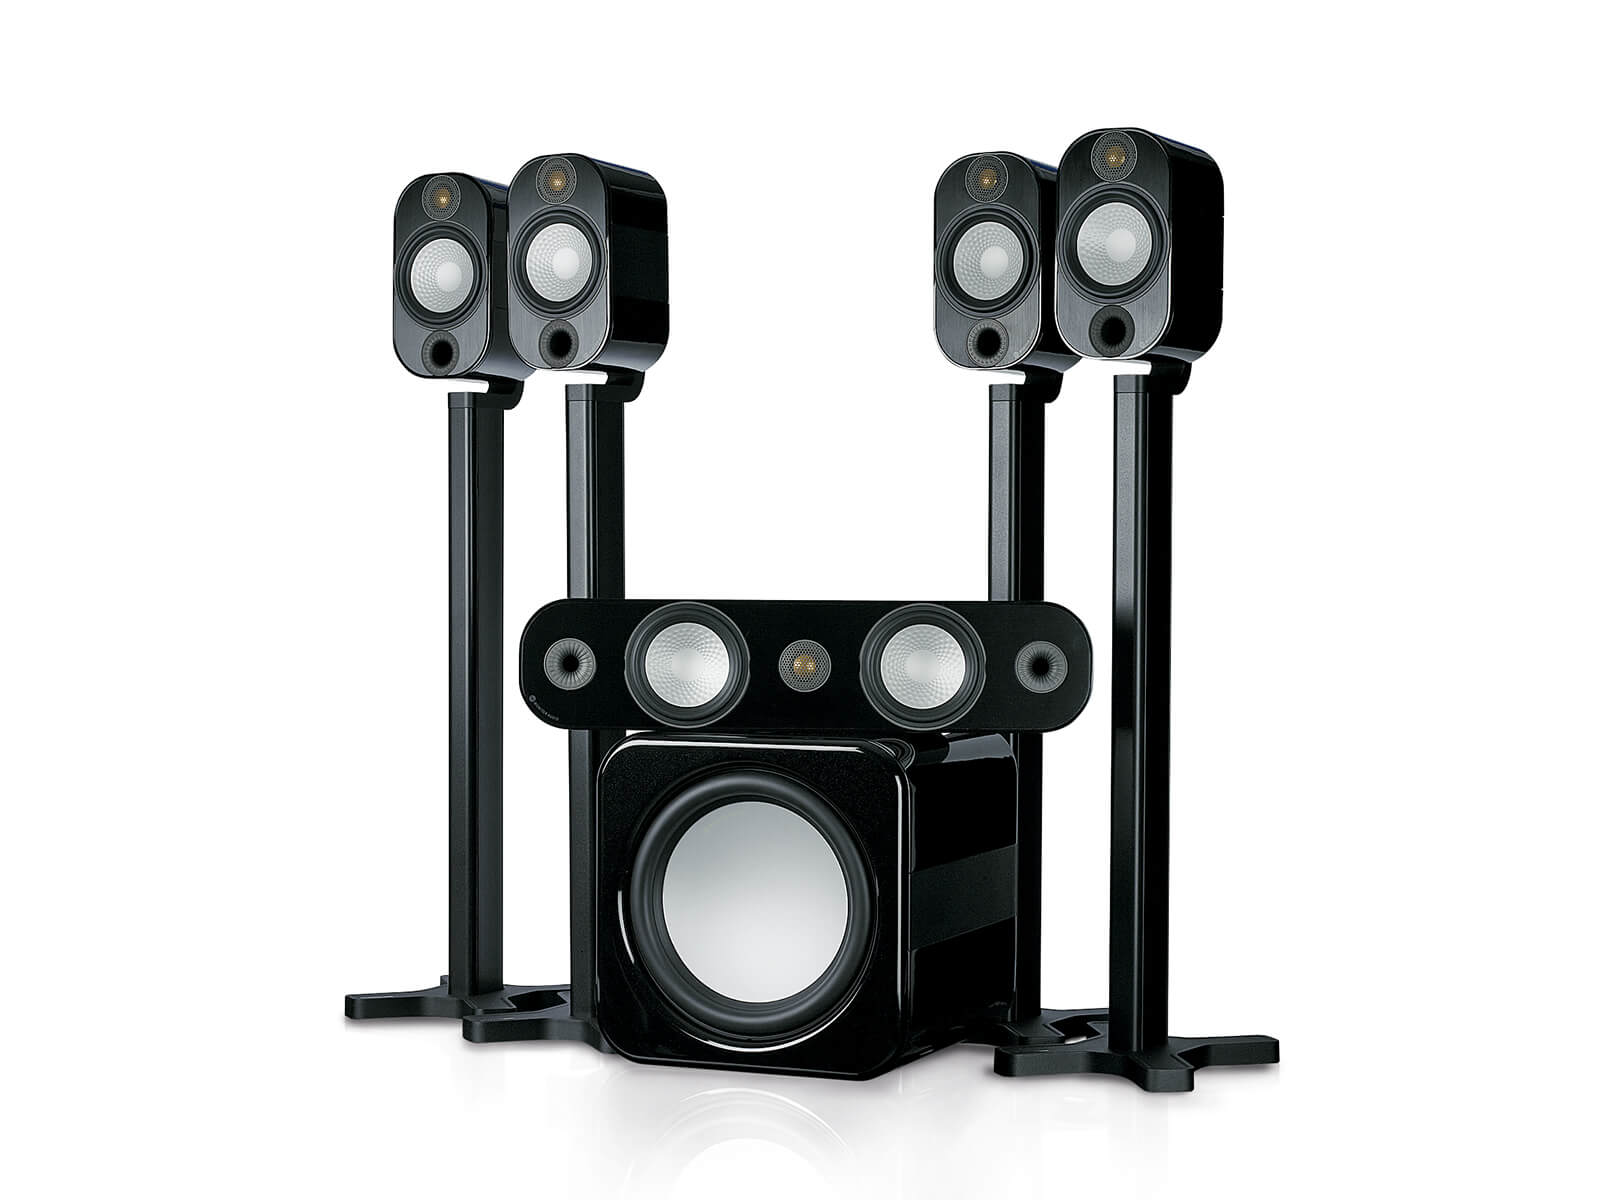 Apex A10AV12 speaker system, with a metallic black high gloss finish.